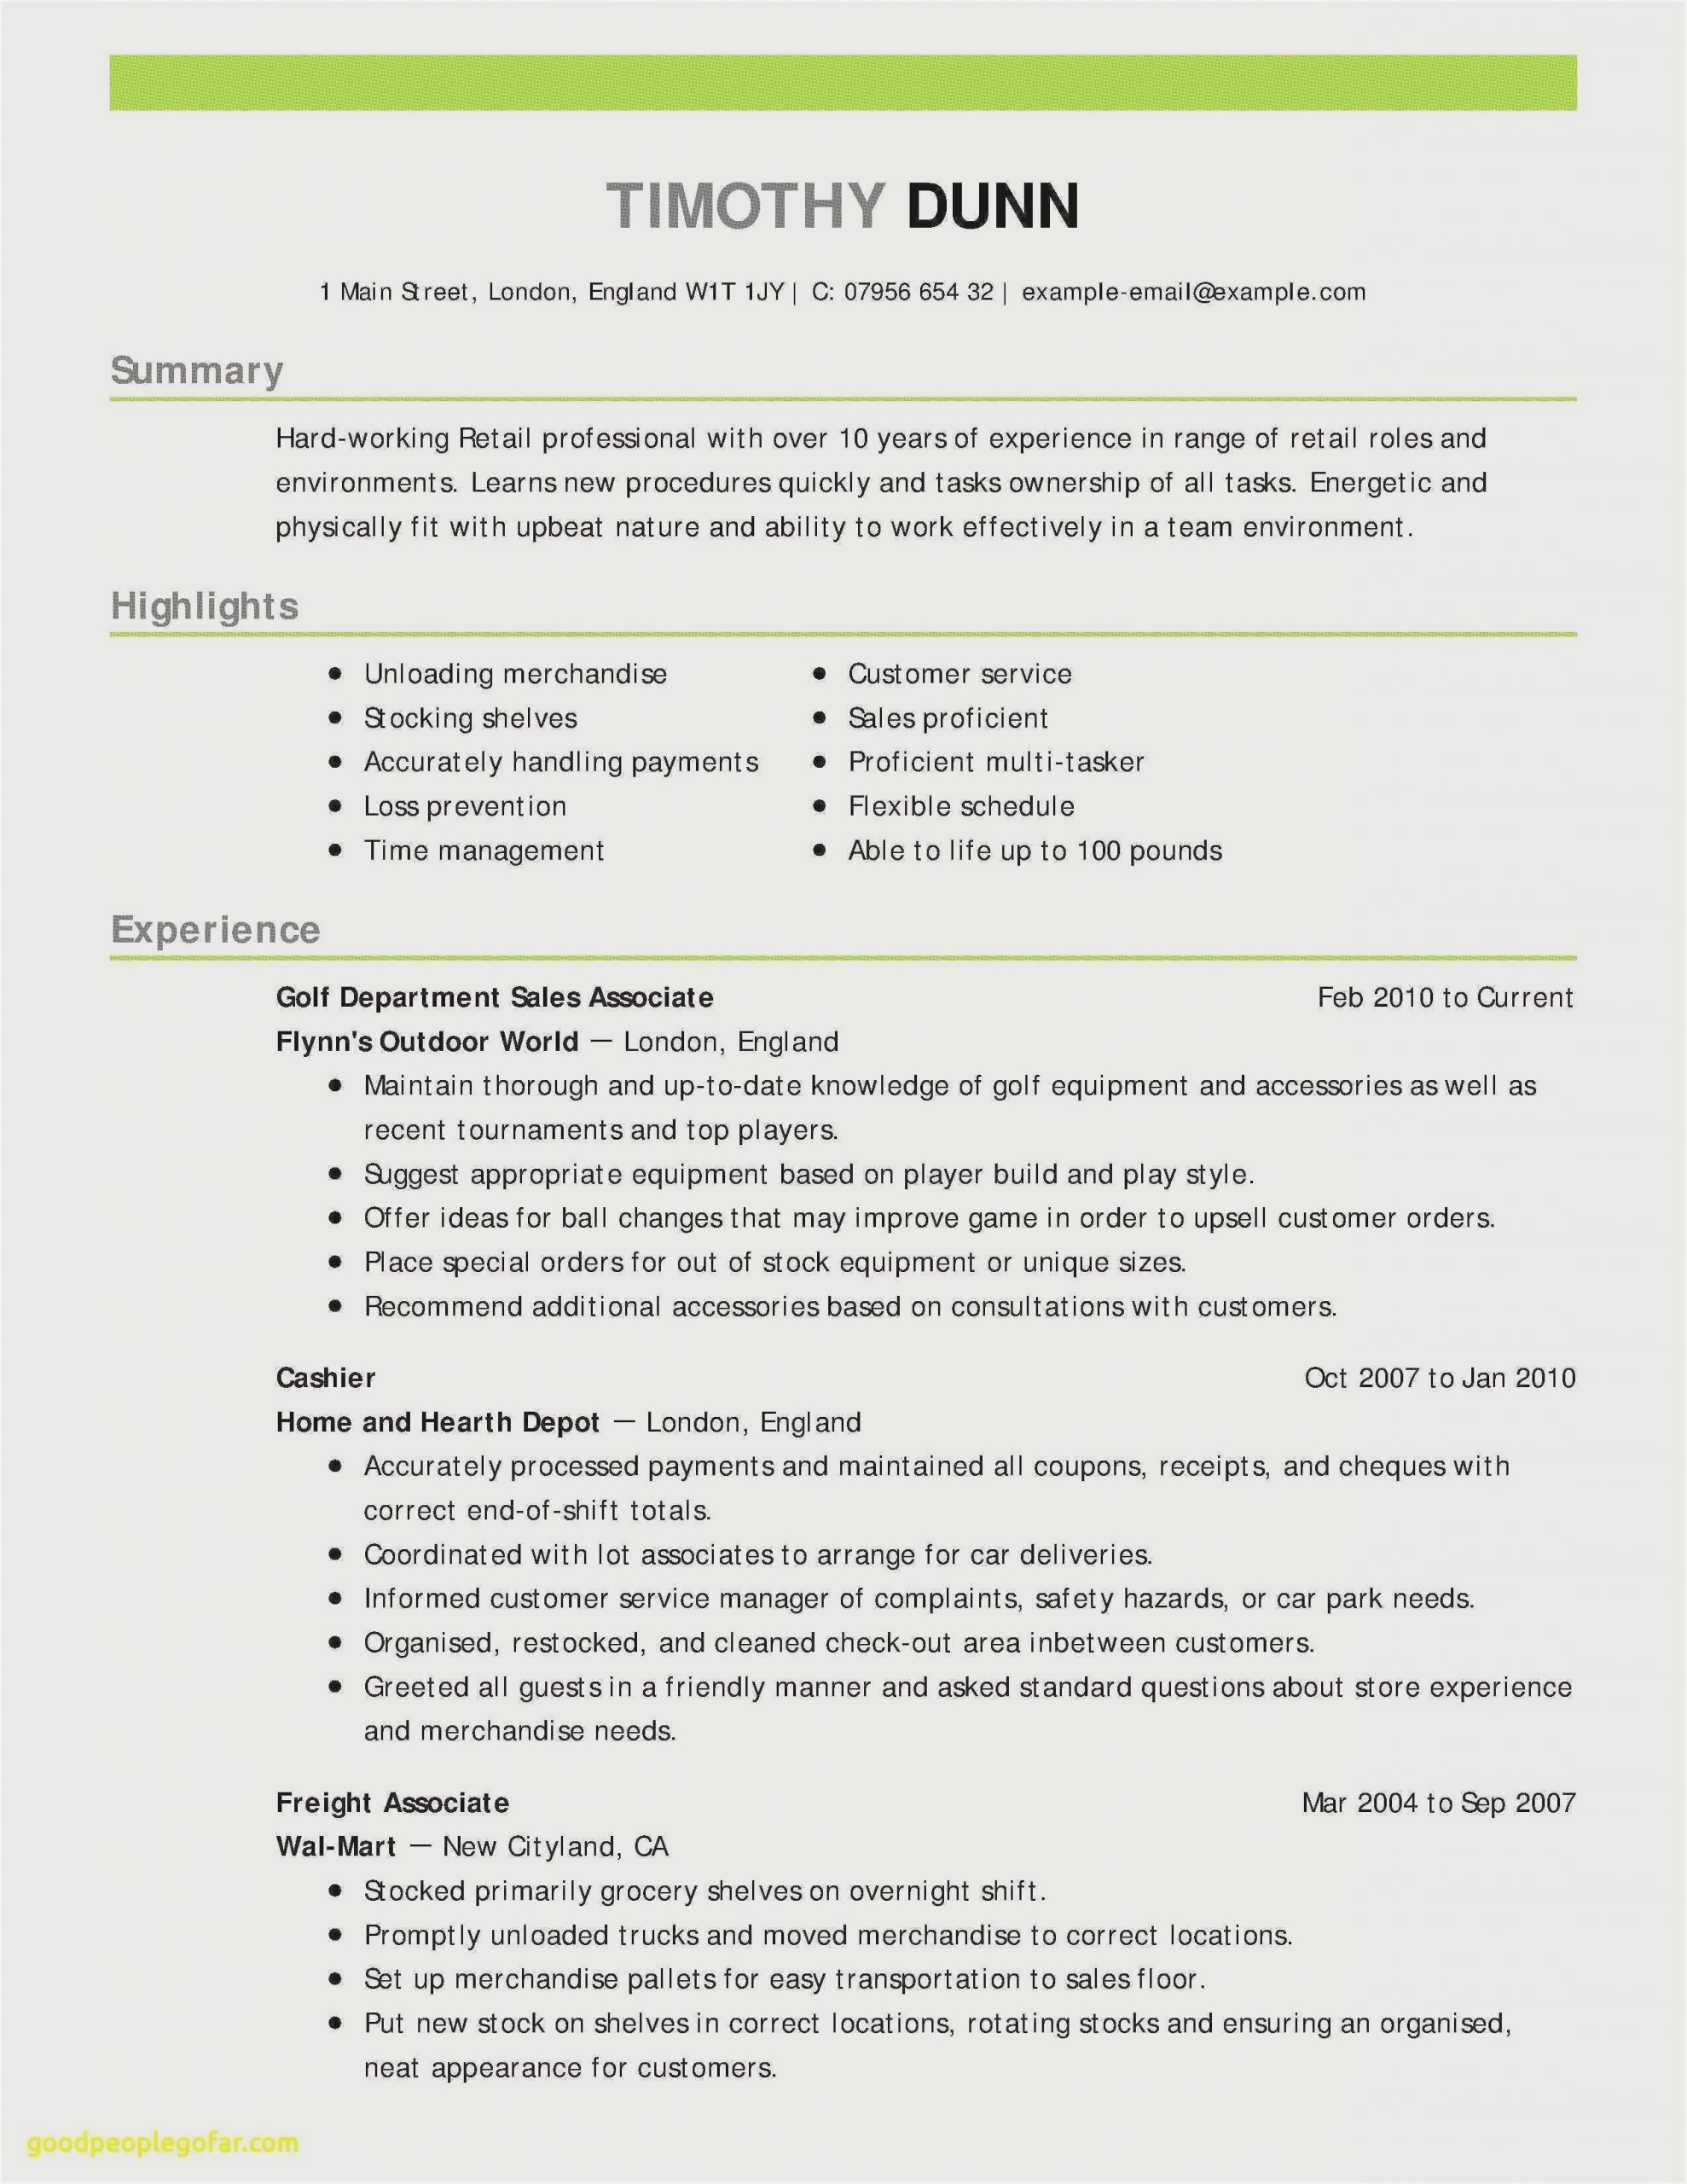 basic resume format examples sample easy simple scaled sailing example military awards on Resume Easy Simple Resume Examples